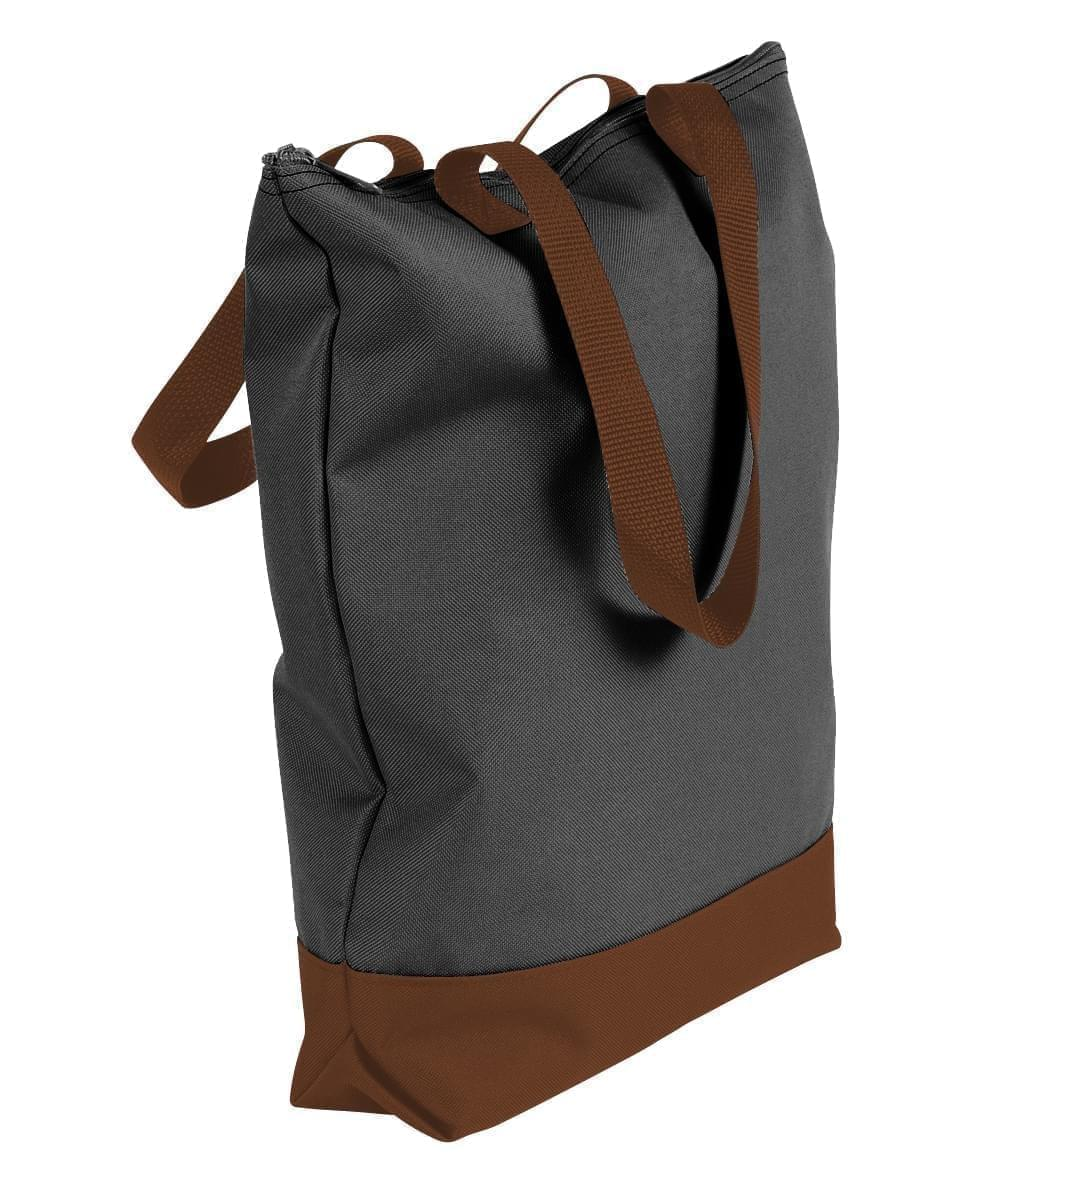 USA Made Poly Notebook Tote Bags, Black-Brown, 1AAMX1UAOS